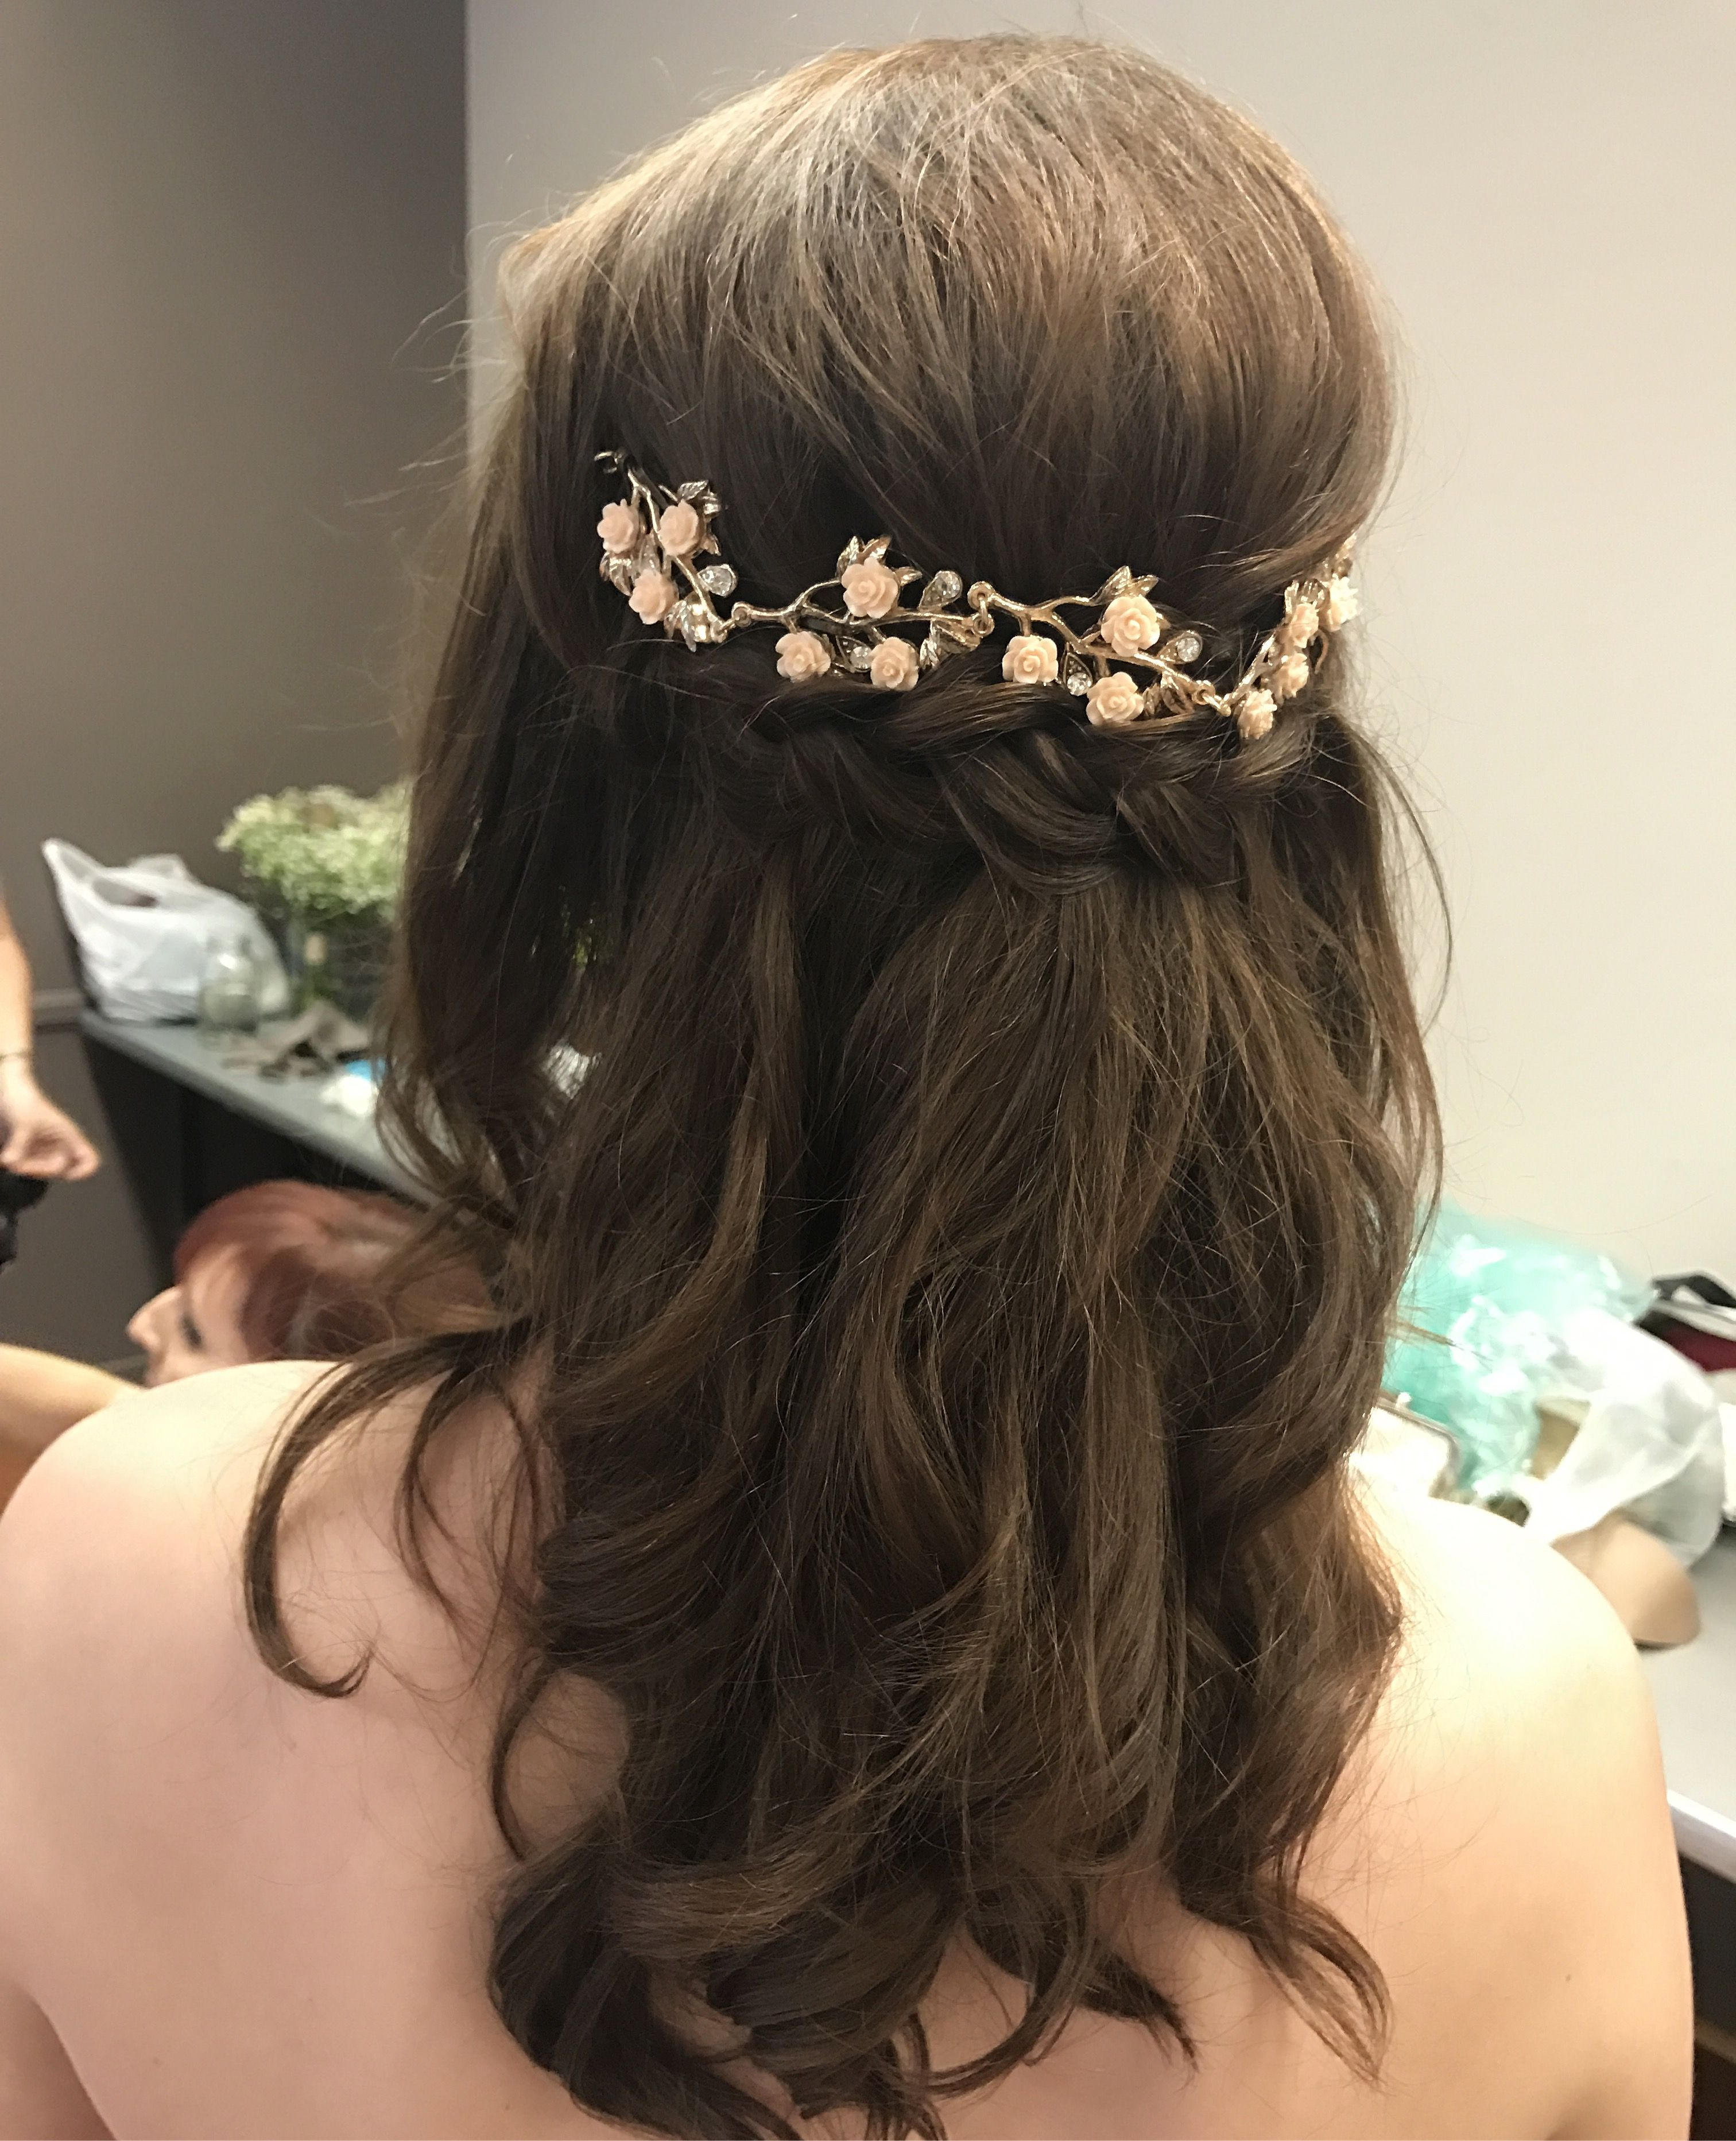 Hair Piece For Wedding Updo: Bridal Updo Half Up Half Down Rose Gold Hair Piece Curled